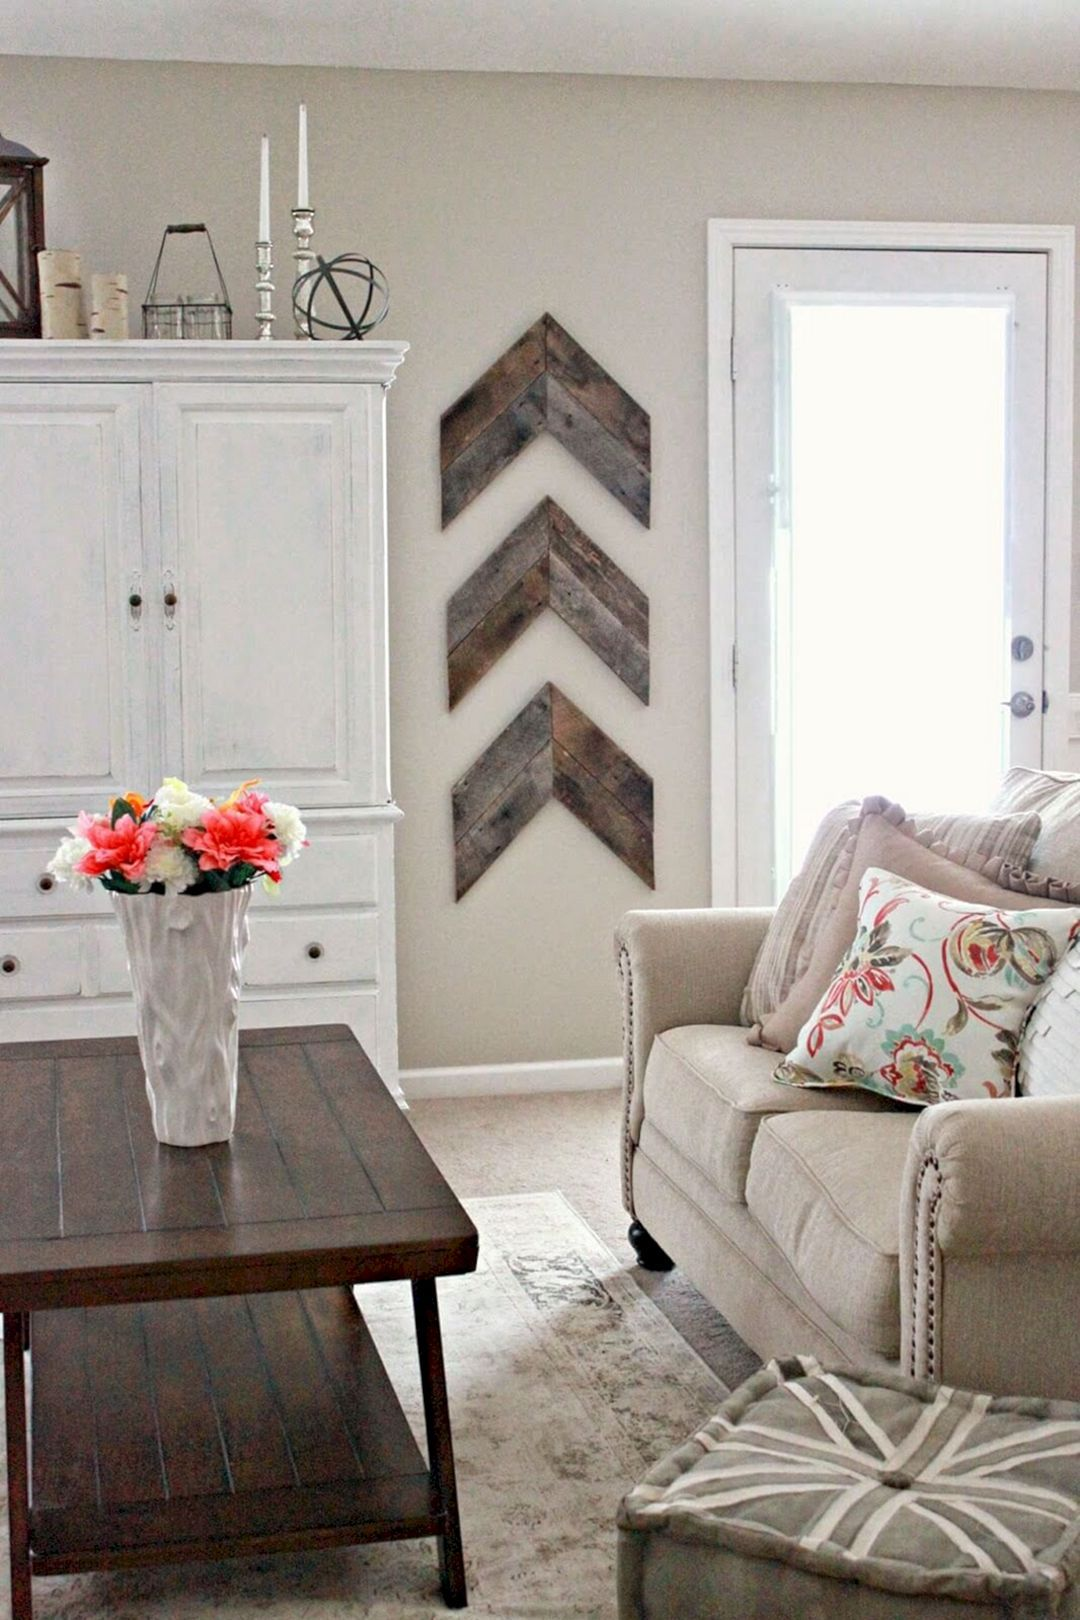 Rustic Country Decorating Ideas #A28